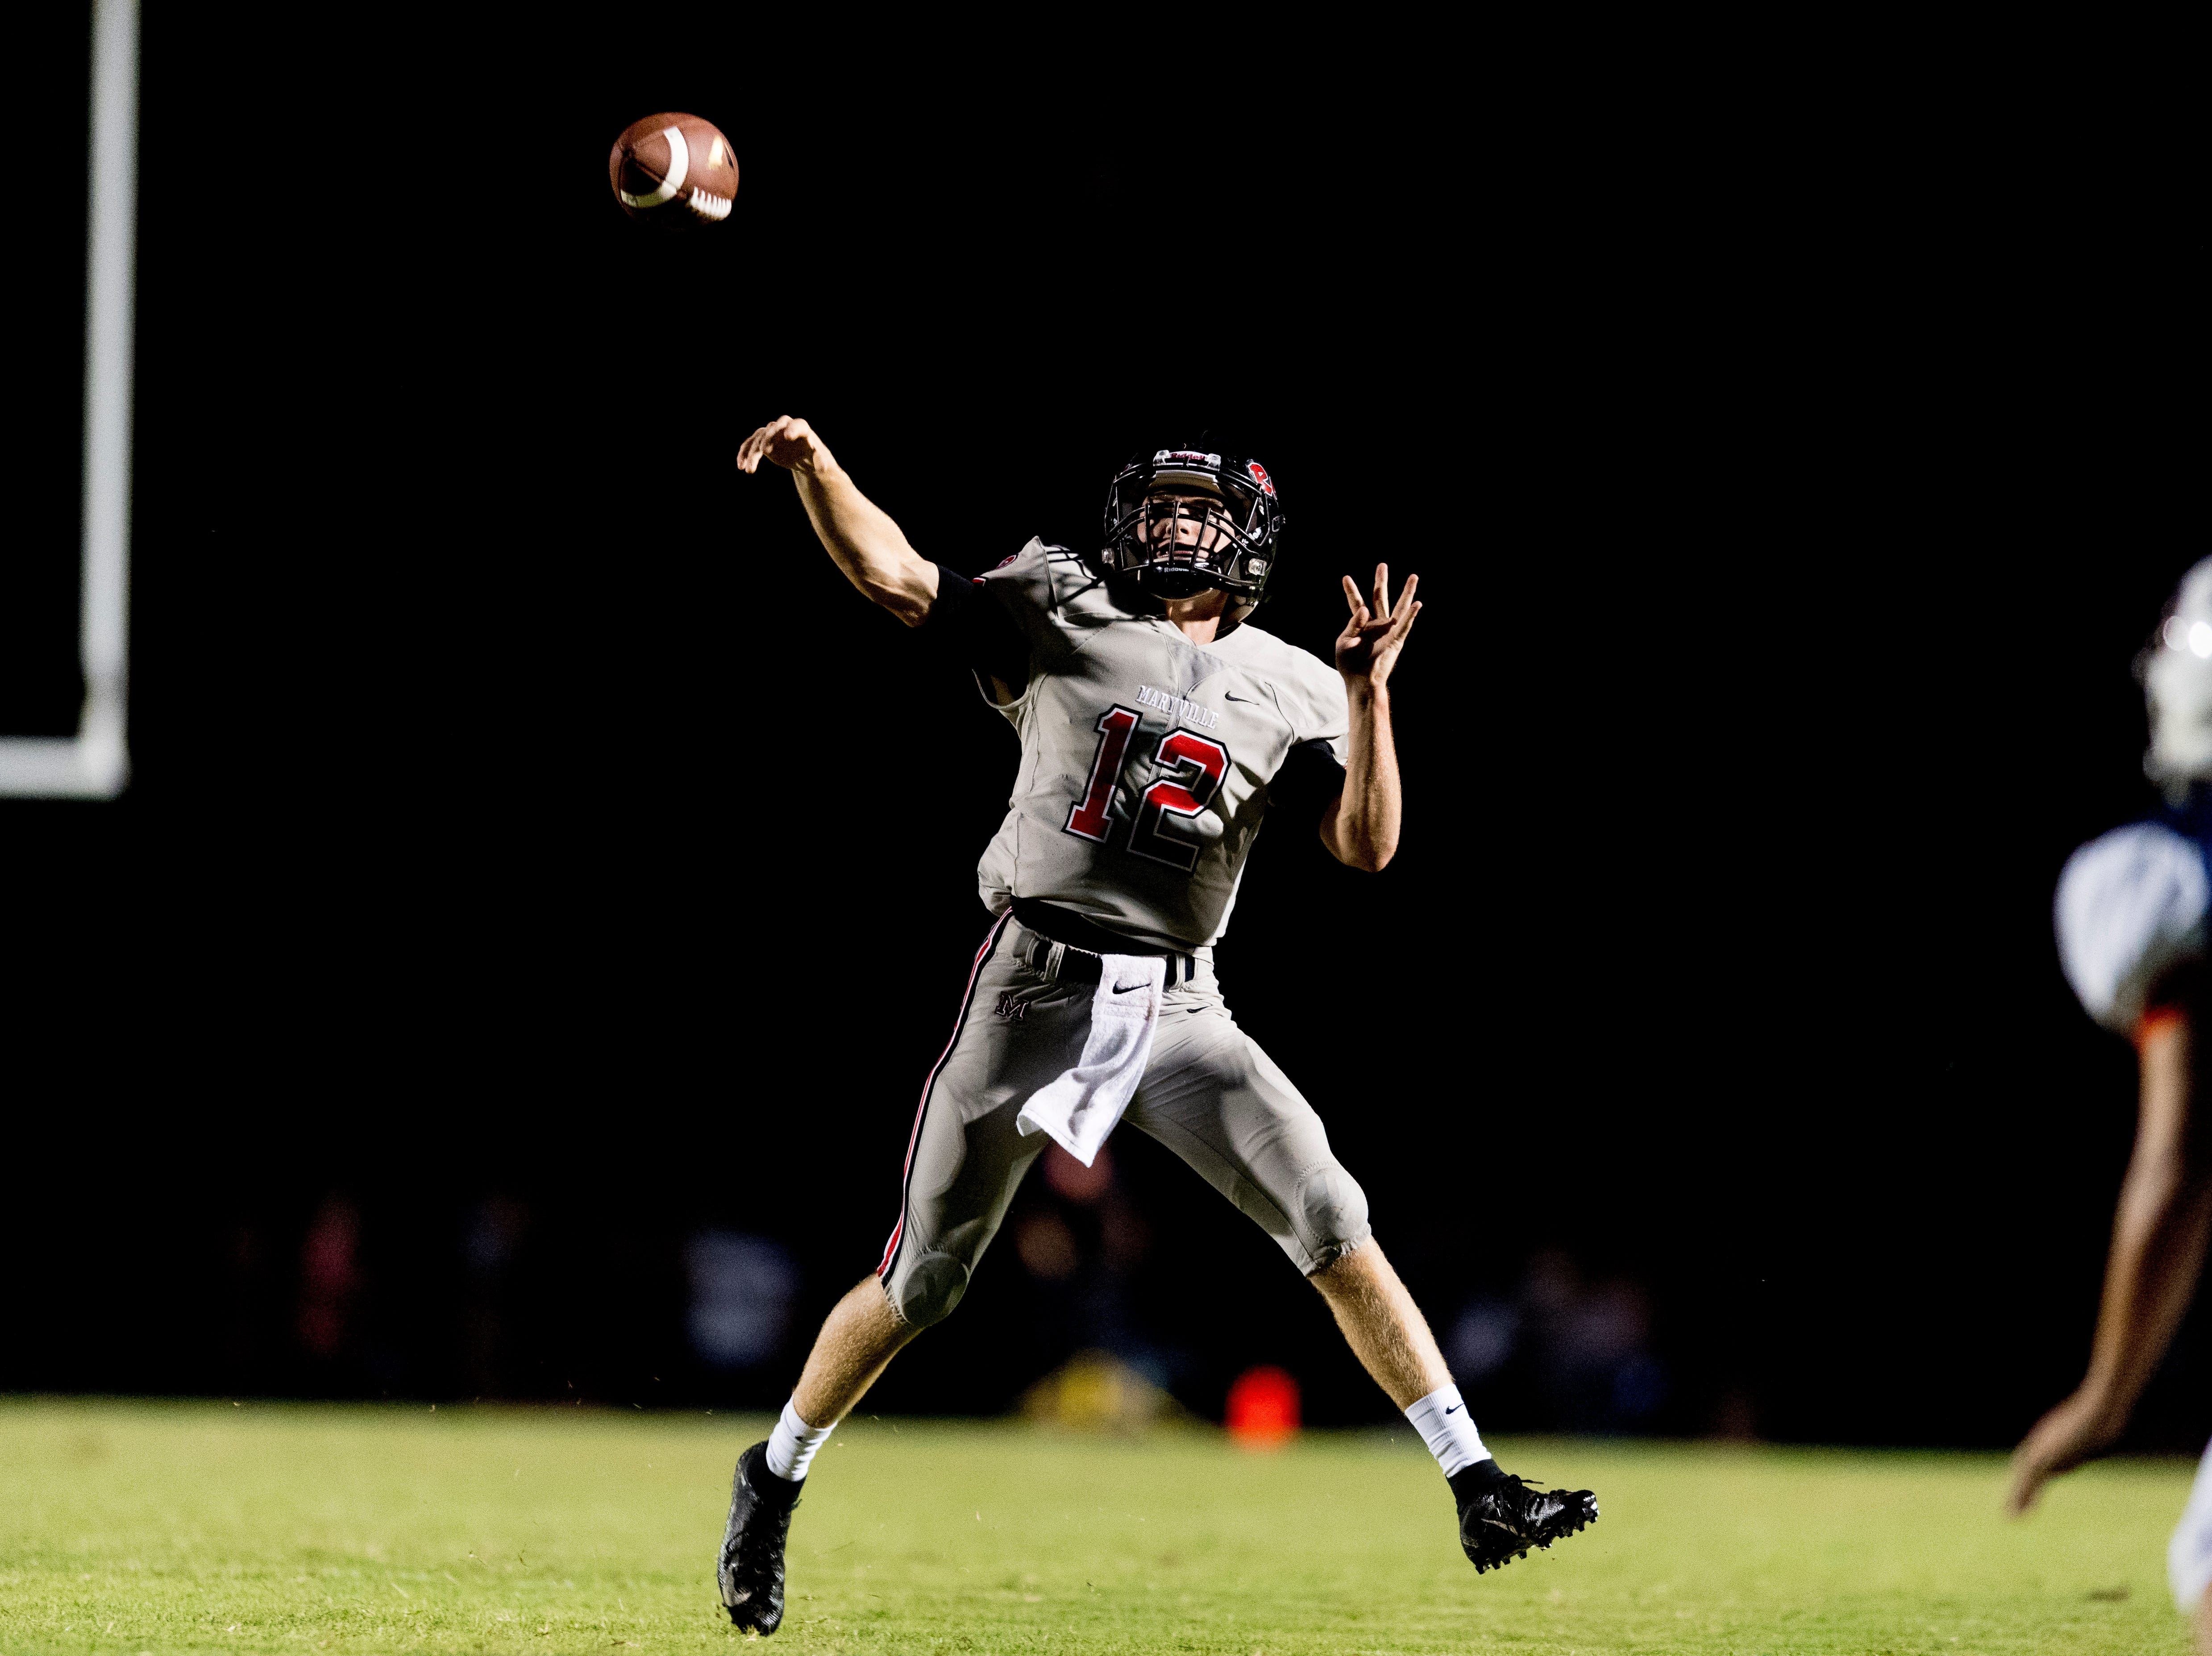 Maryville's Tanner Shiver (12) throws a pass during the Blount County football jamboree at William Blount High School in Maryville, Tennessee on Friday, August 10, 2018.